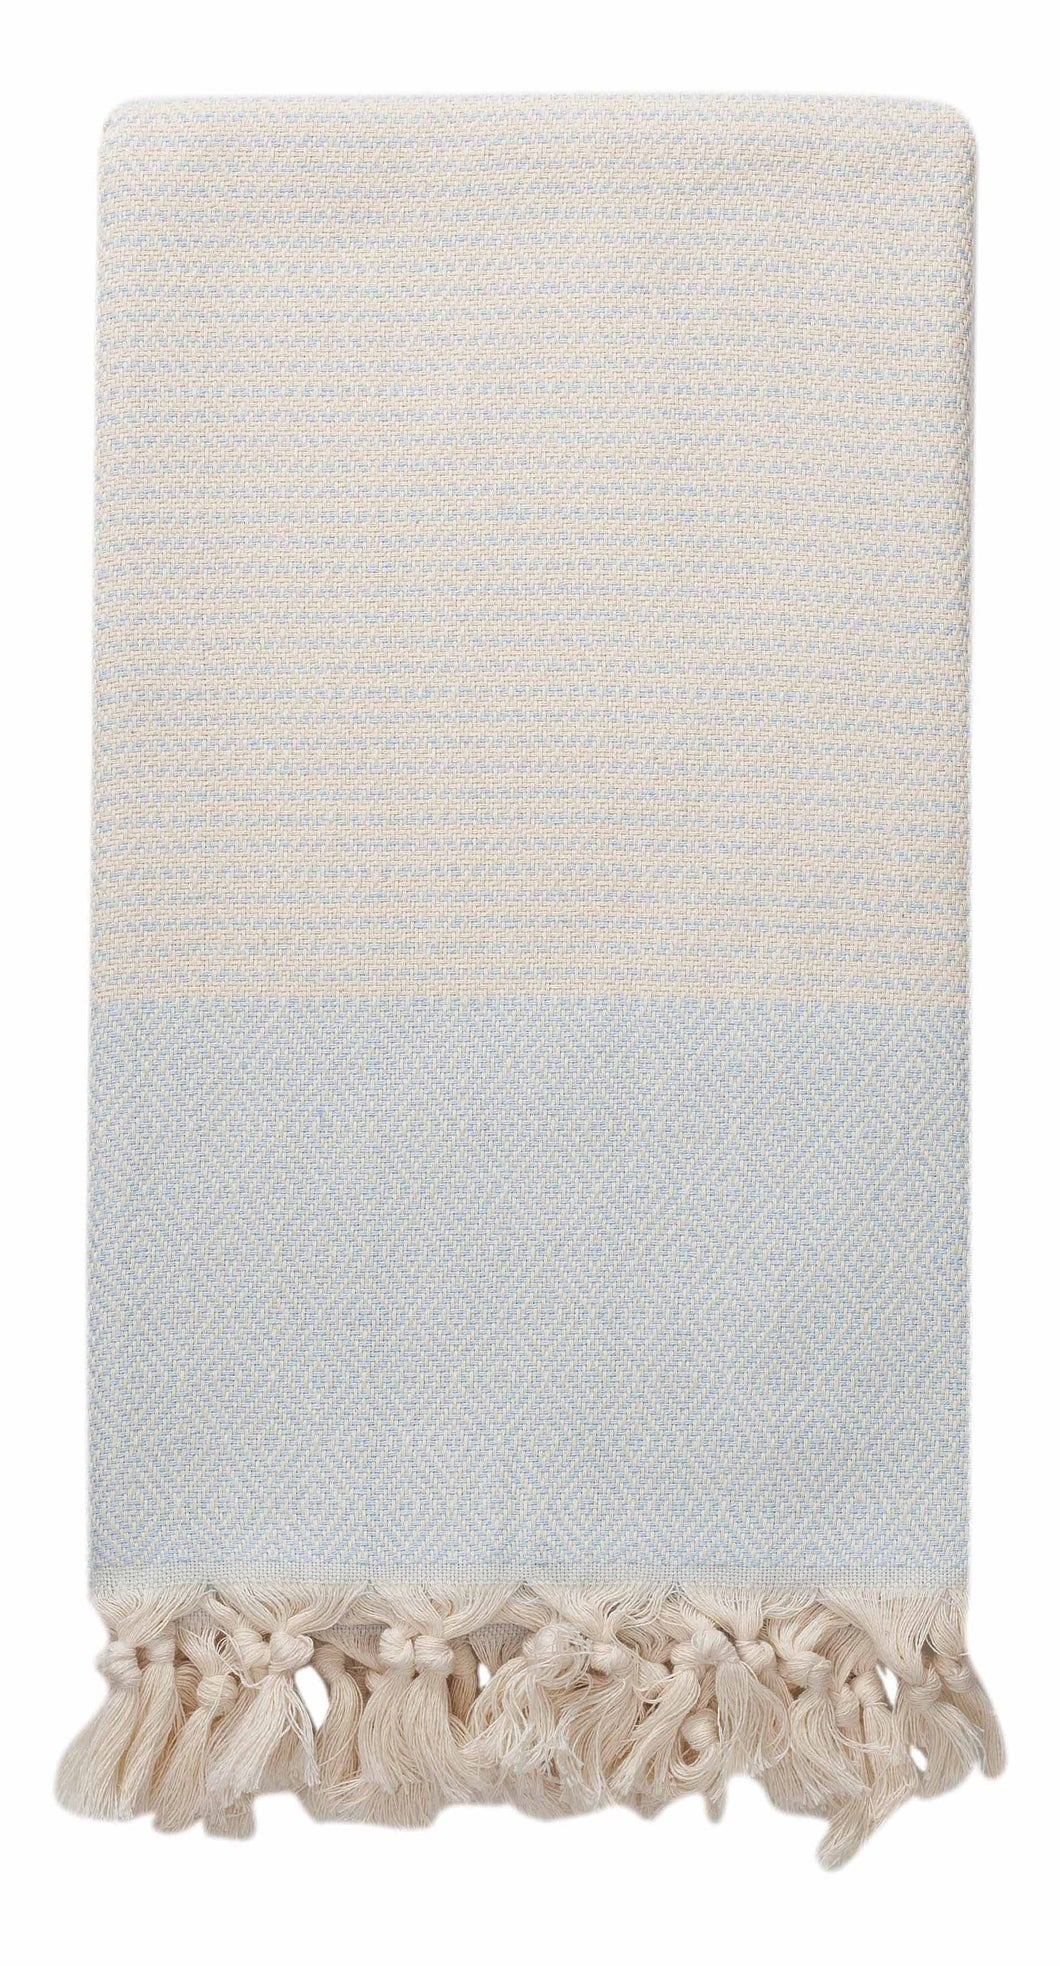 Ice Blue-Grey and Cream Diamond Weave Turkish Towel